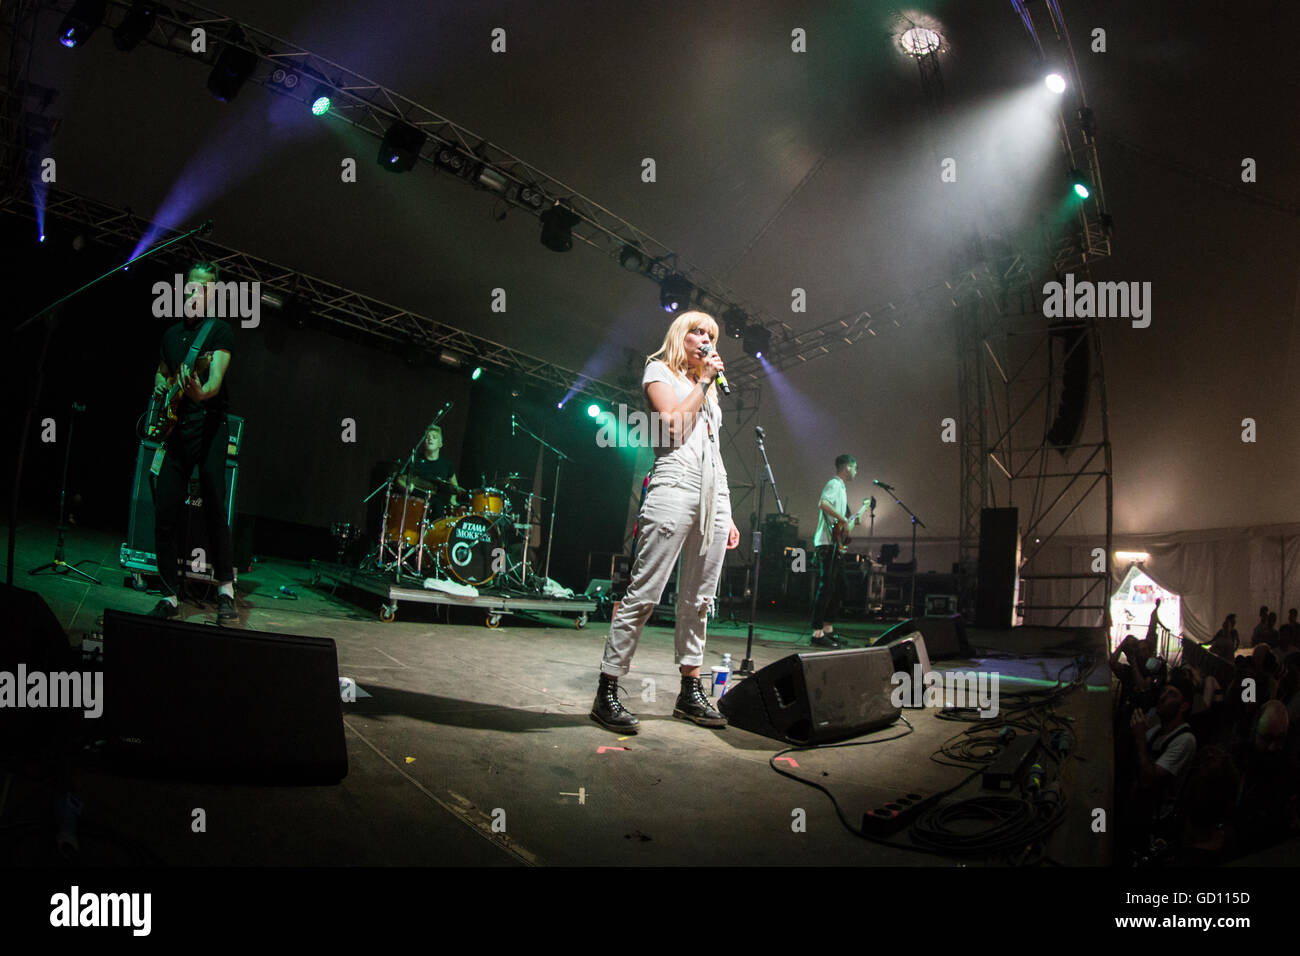 Monza Italy. 10 July 2016. The English indie-pop band ANTEROS performs live on stage at Parco di Monza during the - Stock Image